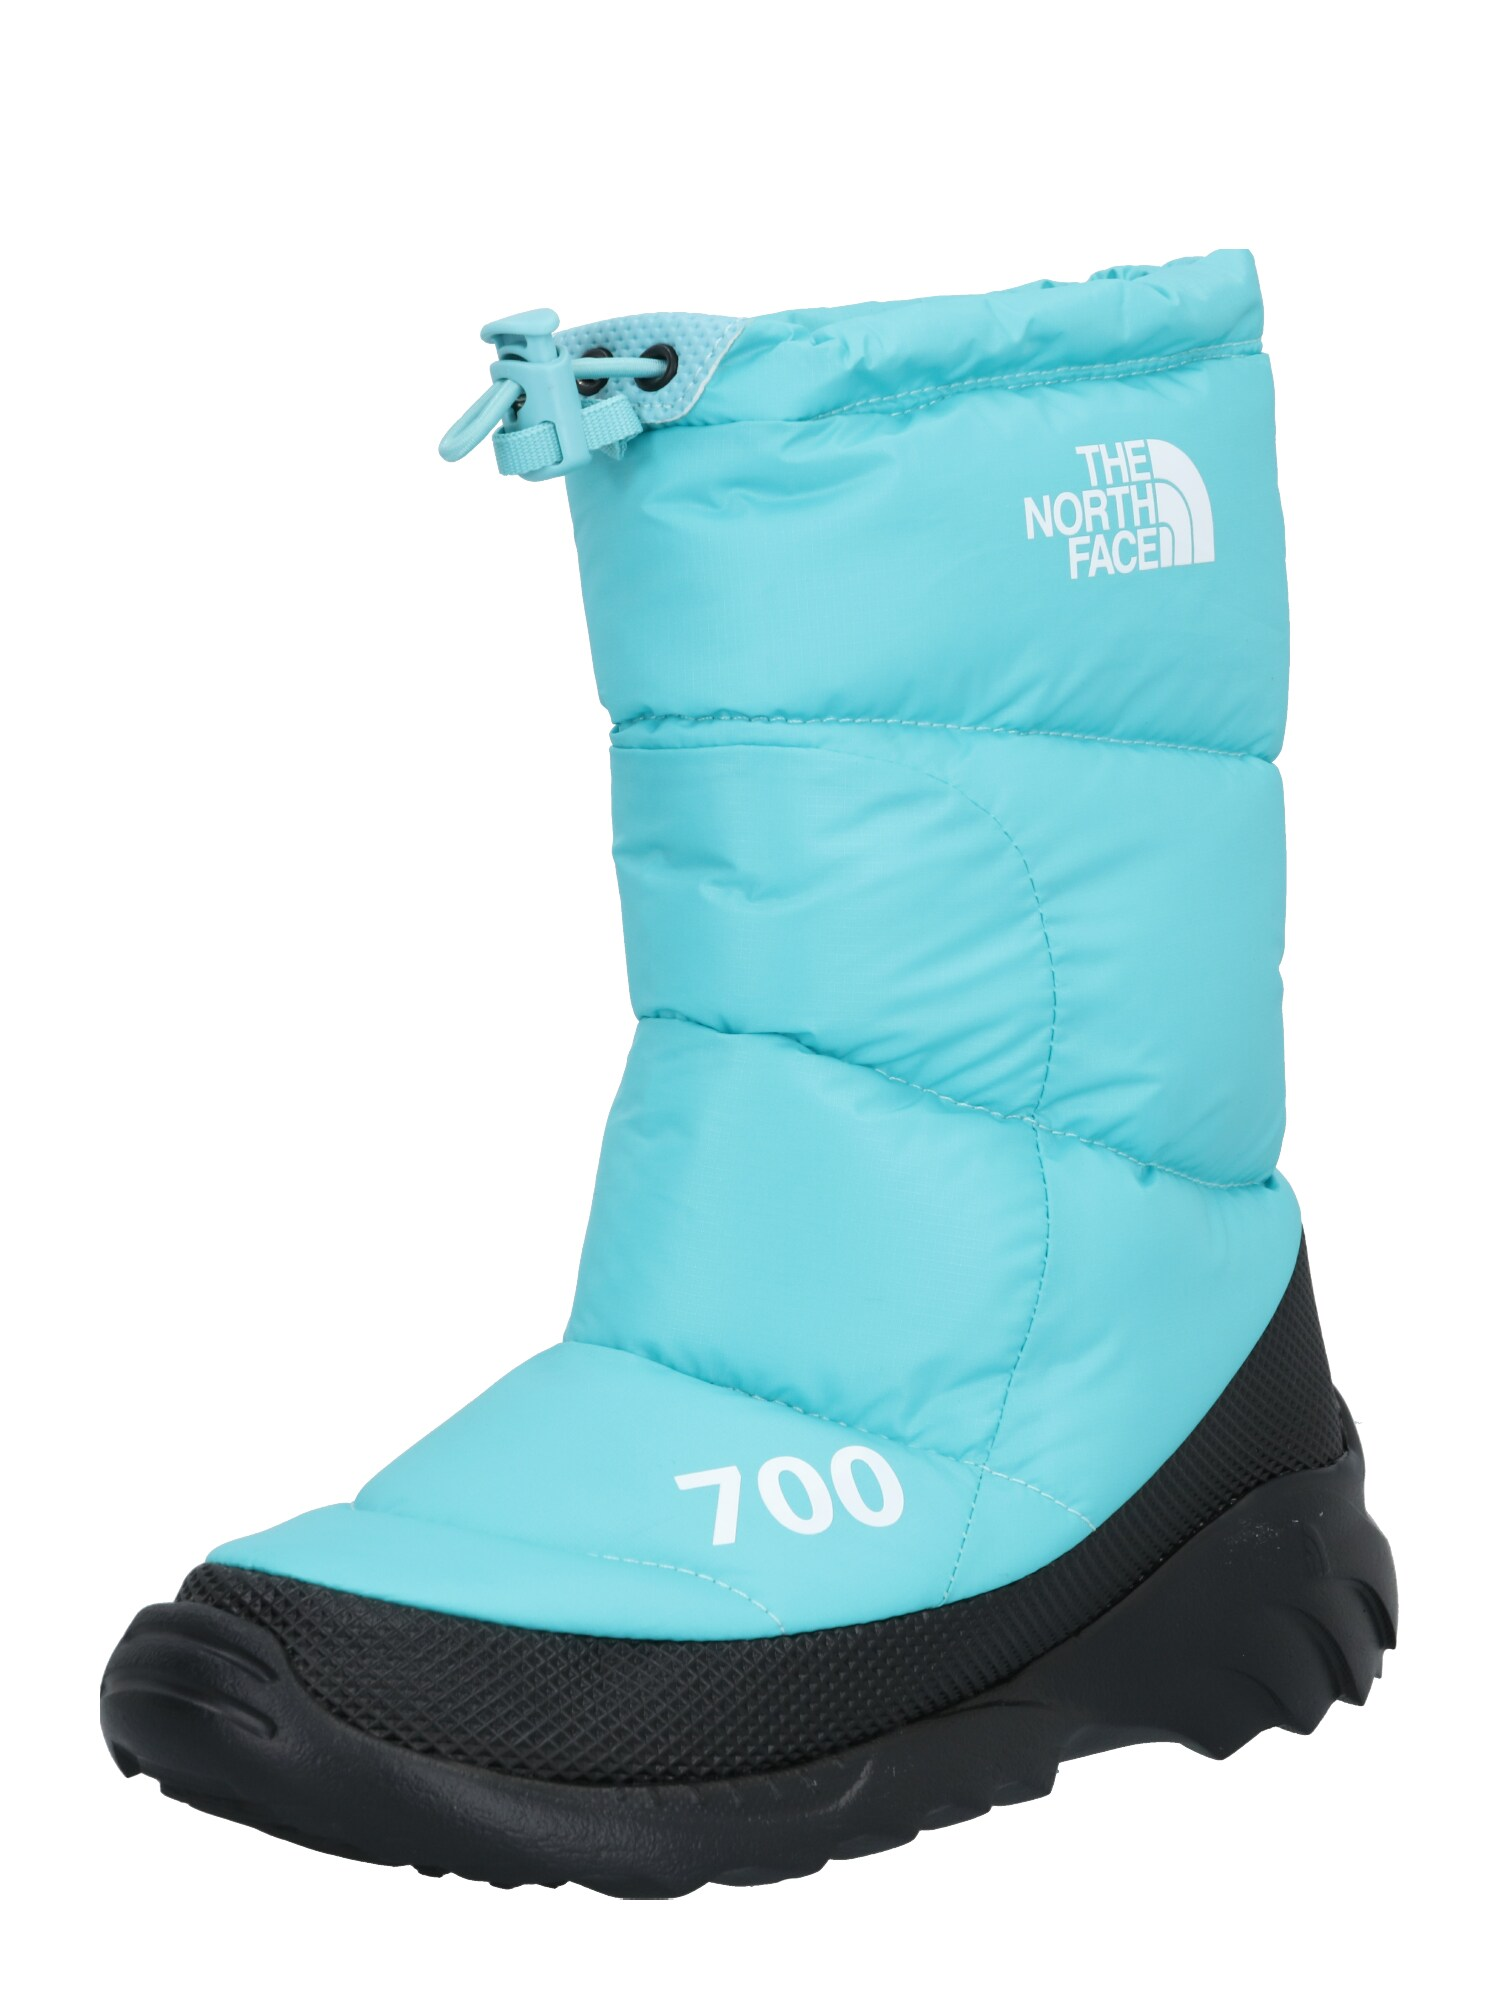 THE NORTH FACE Kozačky Nuptse Bootie 700 bílá modrá The North Face